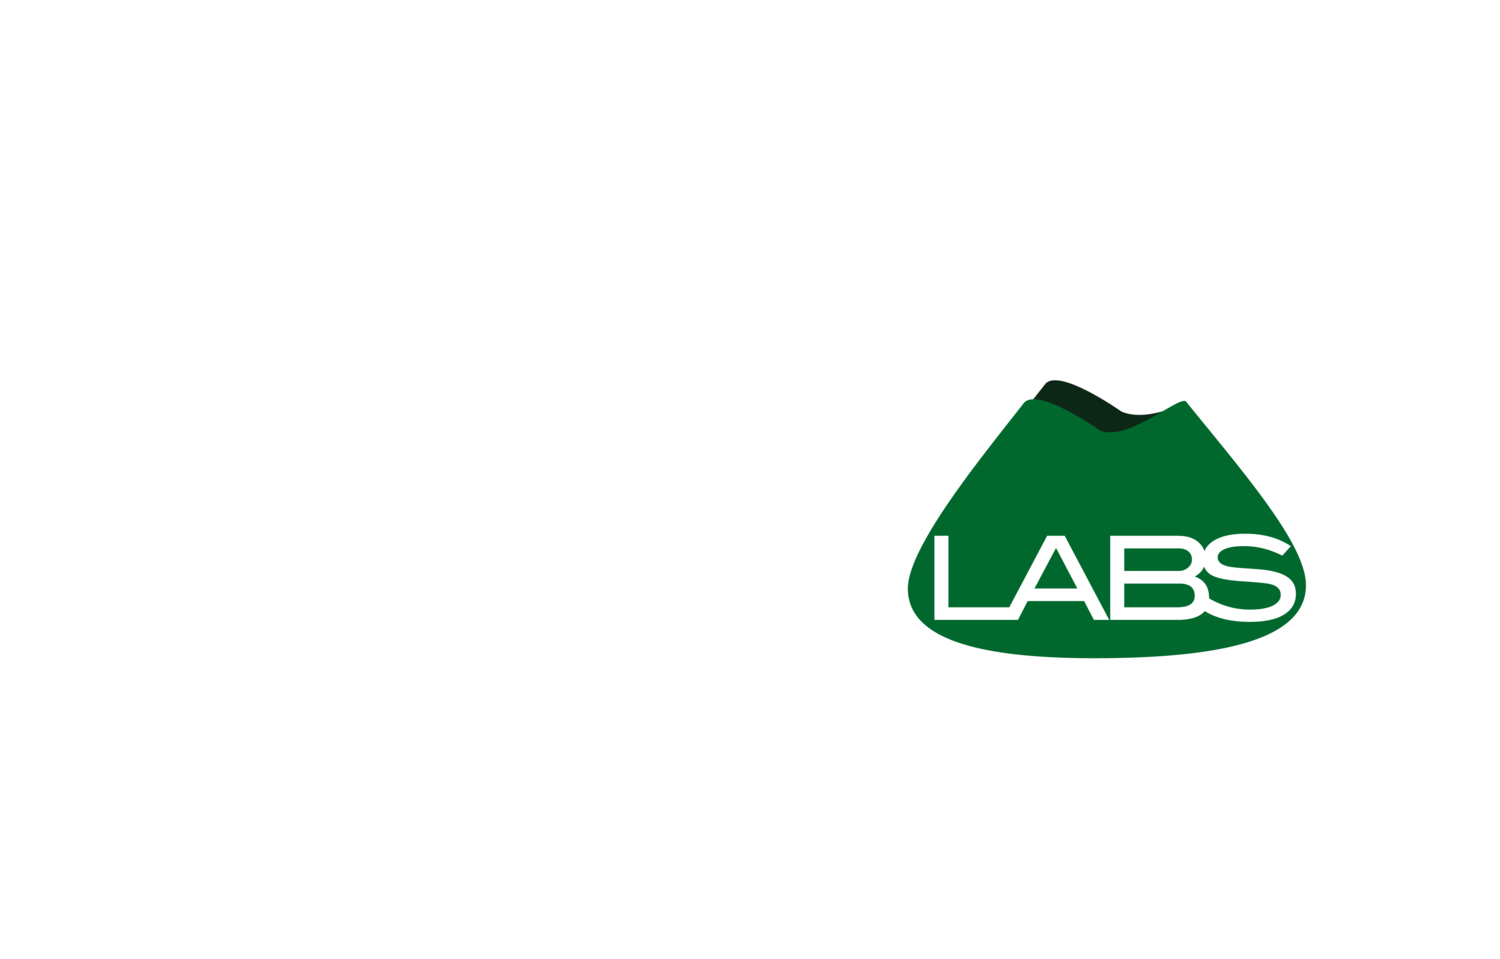 374 Labs